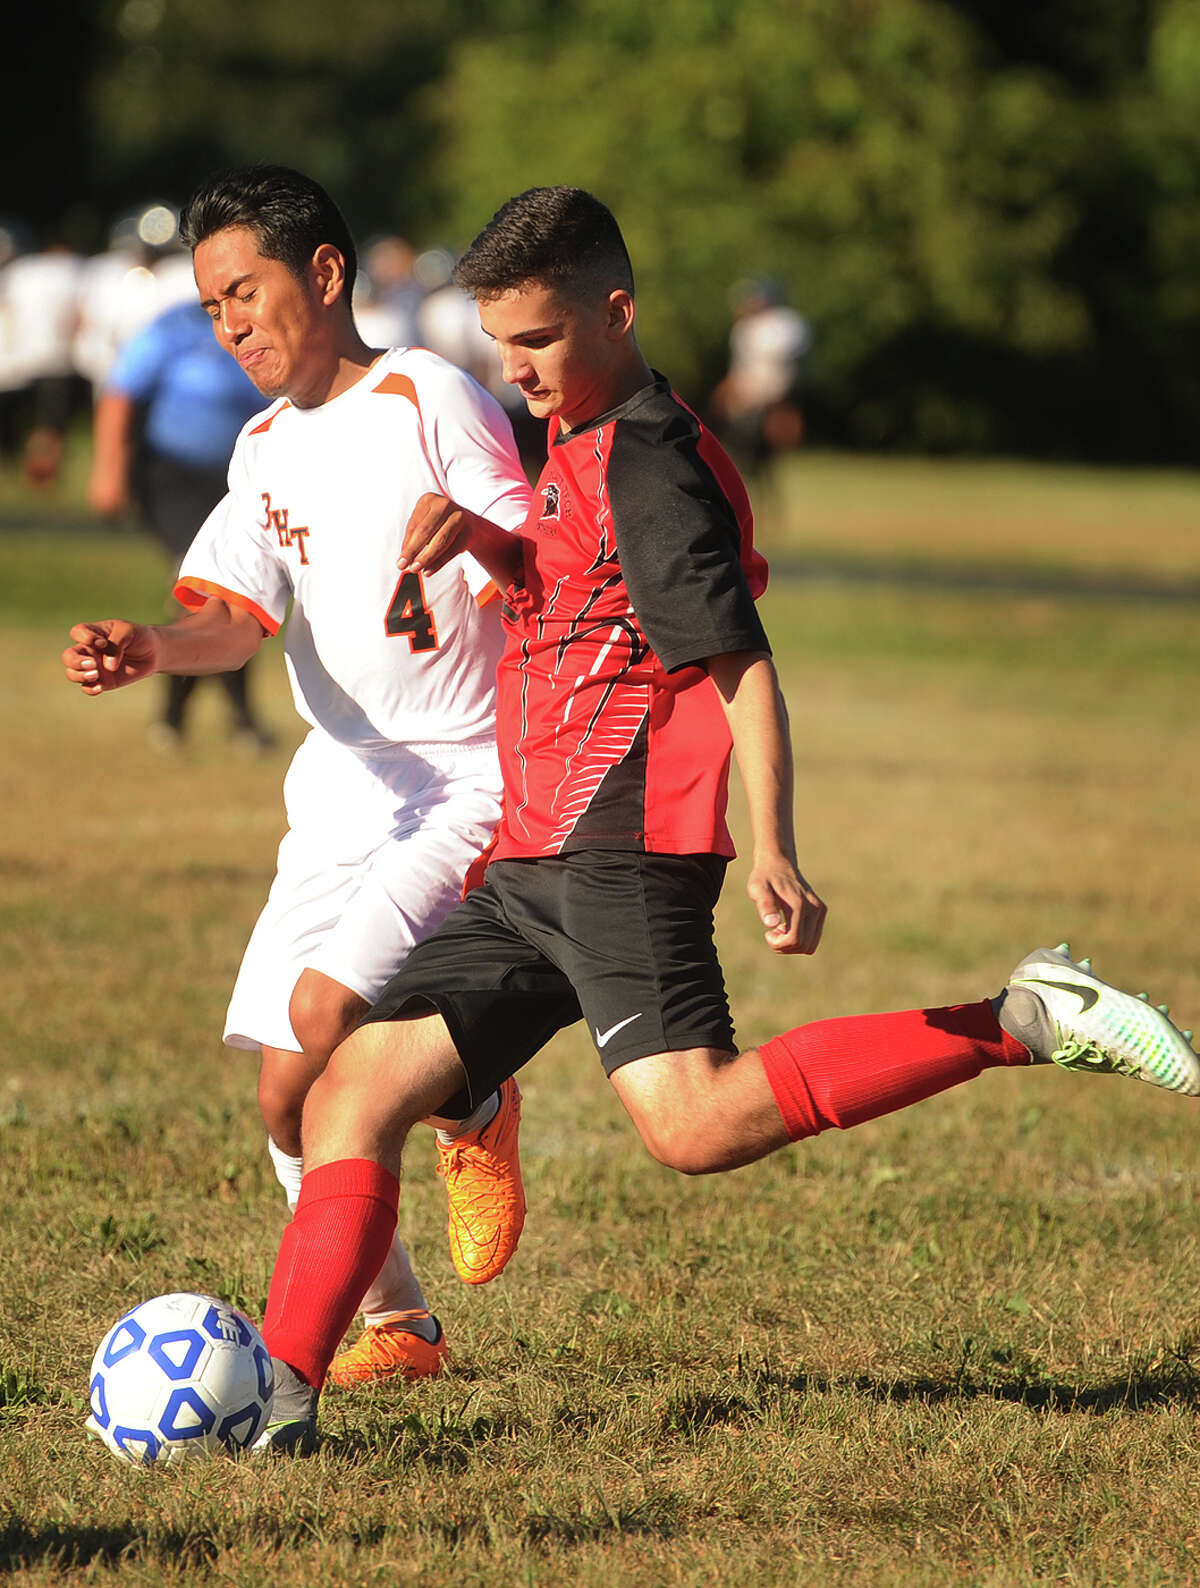 Bullard Havens' Jerry Xochical, left, defends Platt Tech's Hazar Sahin during their soccer game at Bullard Havens Tech in Bridgeport, Conn. on Monday, September 12, 2016.